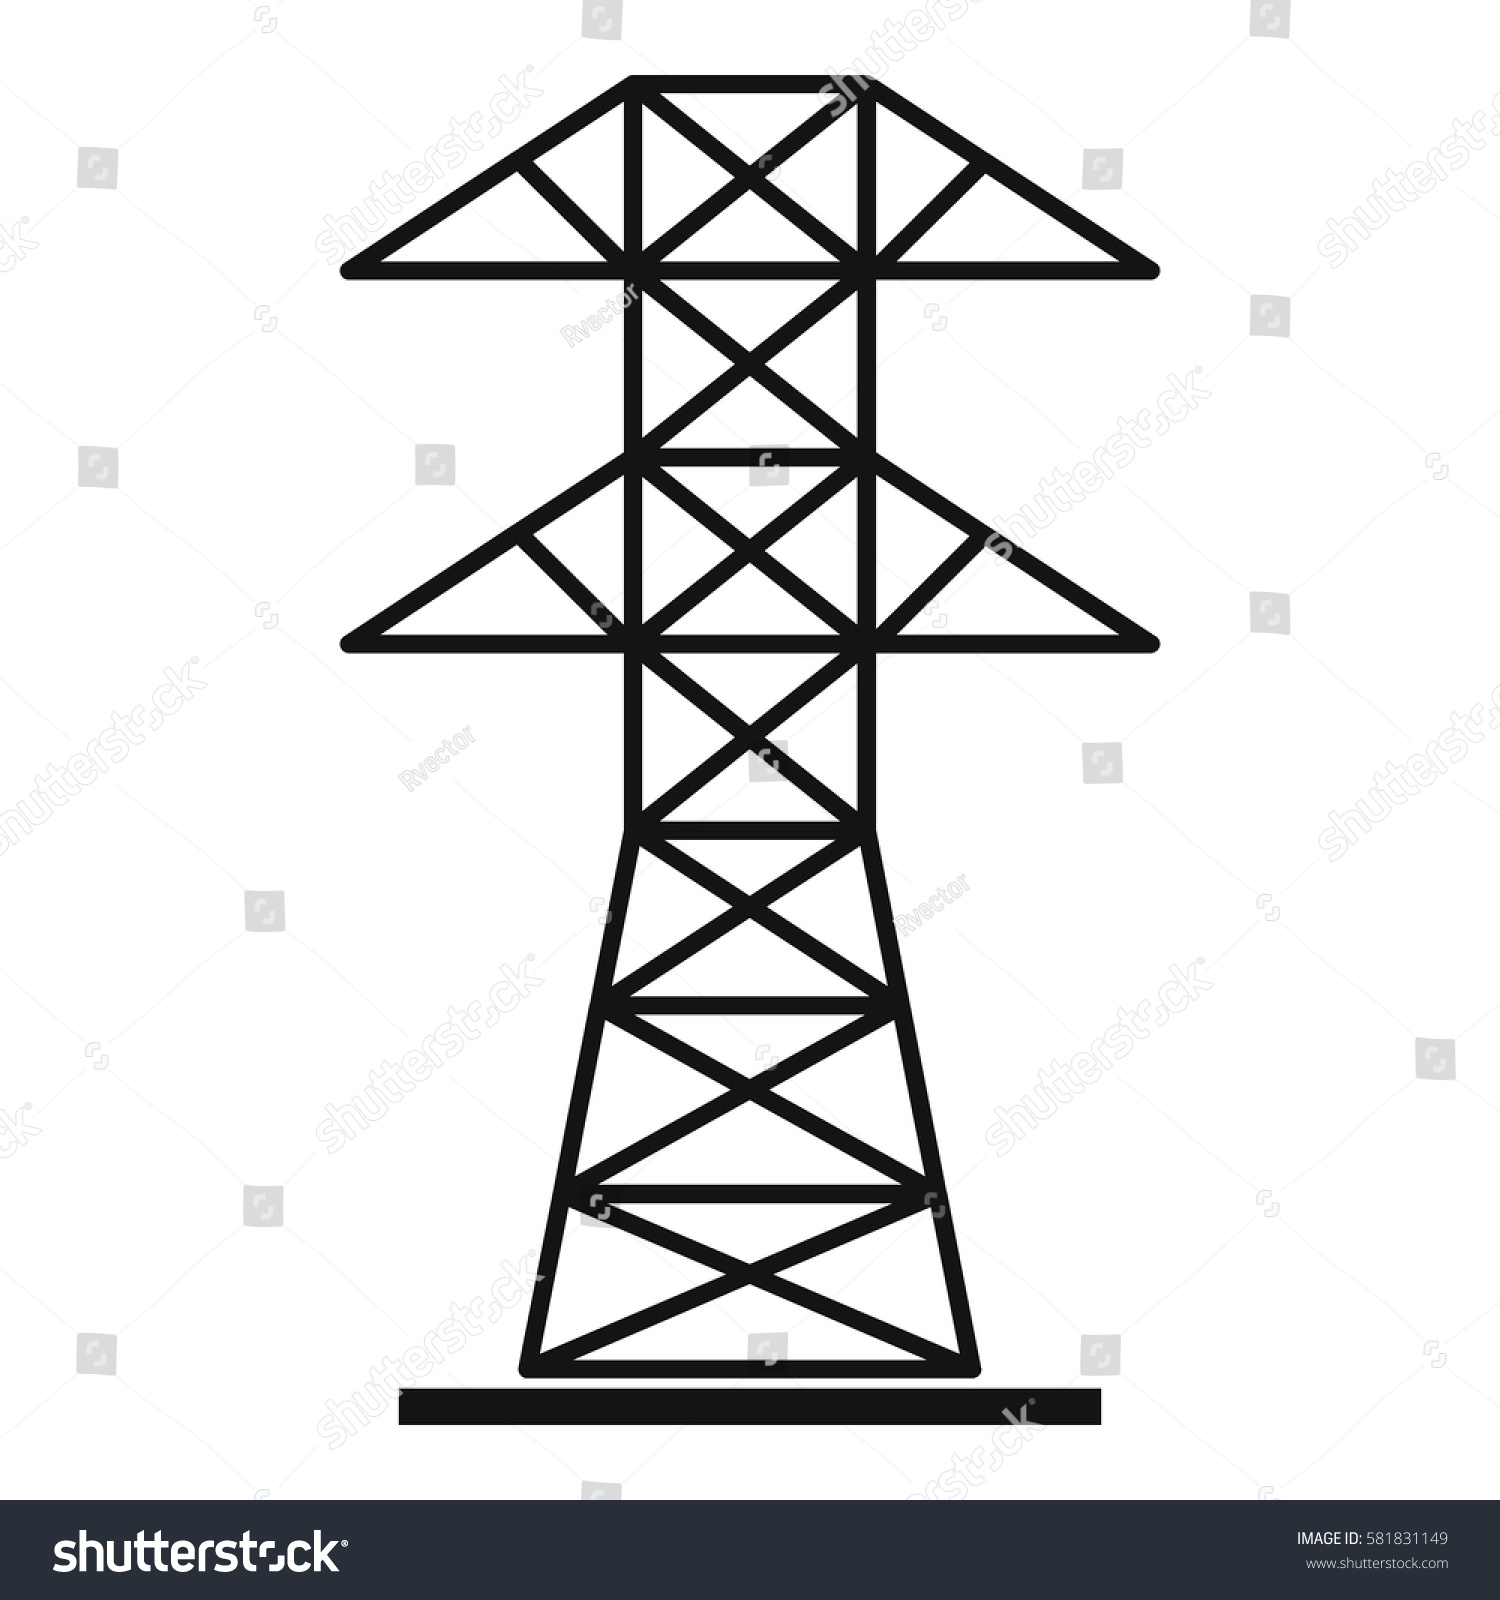 Coshh Poster Laminated A2 P2135 together with Why Use Autocad Electrical furthermore Operation Maintenance 220 132kv in addition Circuit breaker moreover Electric Pylon Icon Simple Illustration Vector 581831149. on electrical power distribution symbols